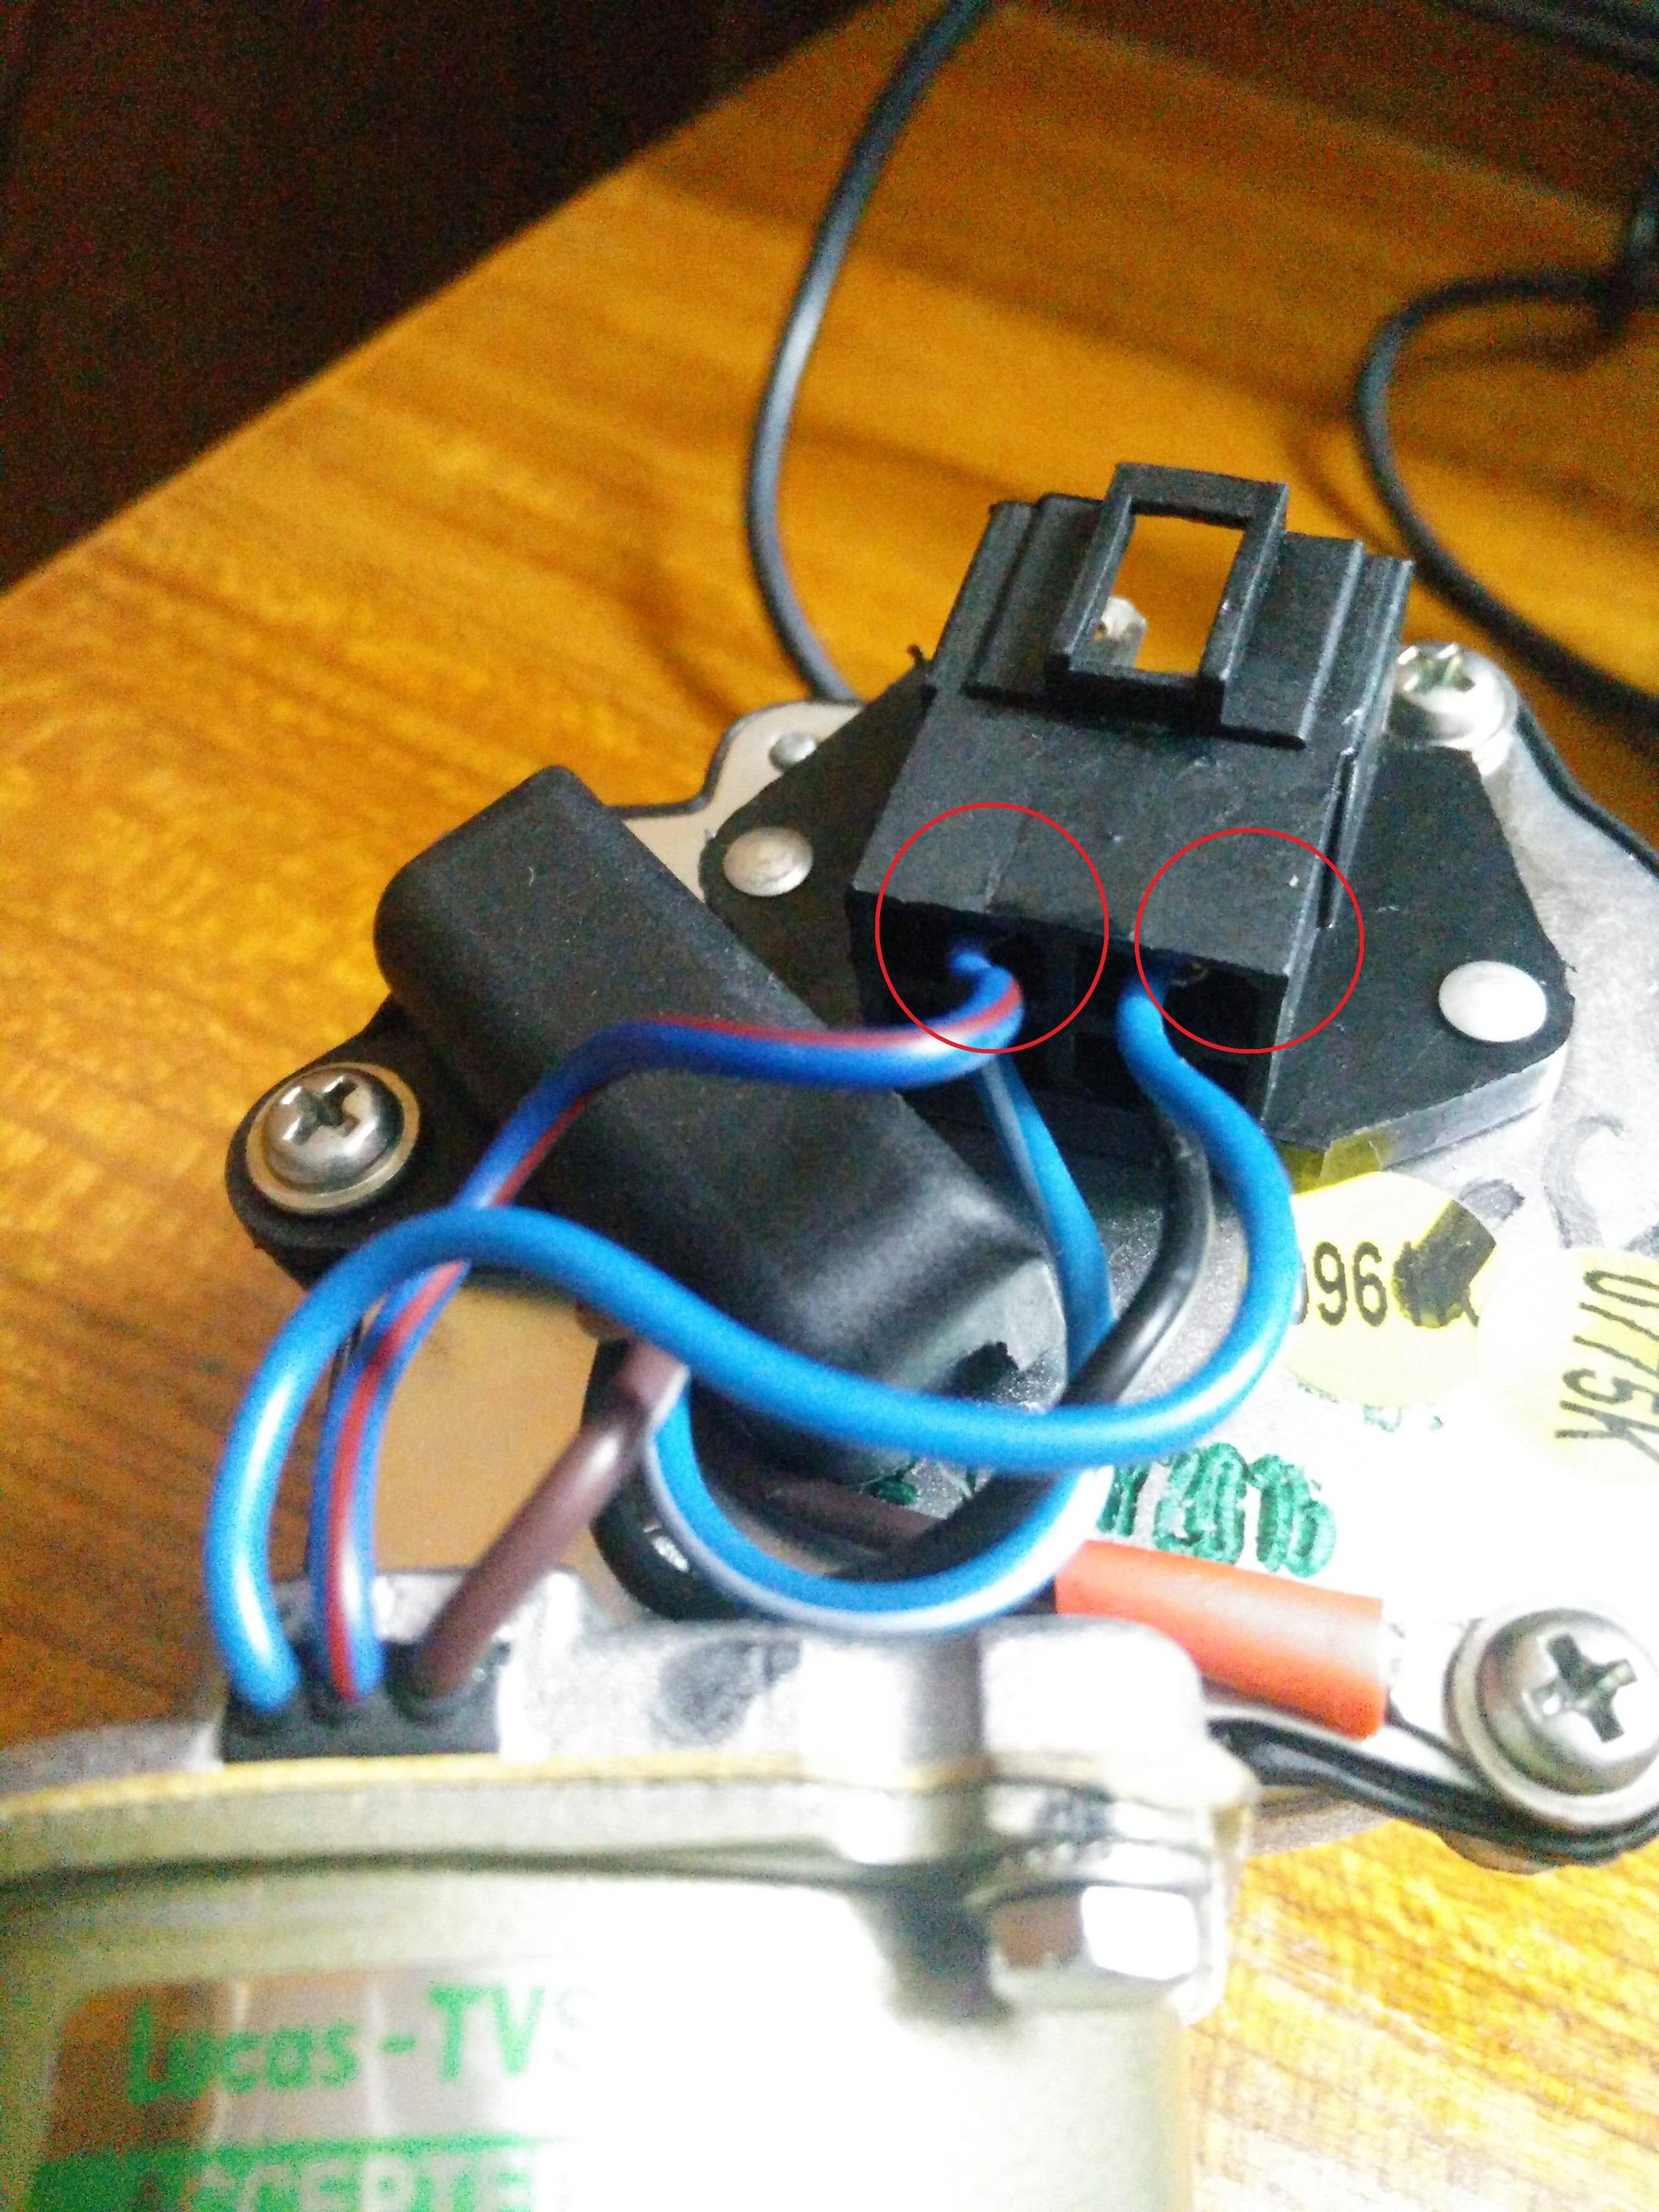 4 wire dc motor connection diagram boiler wiring batteries how to connect a windshield wiper power wires of